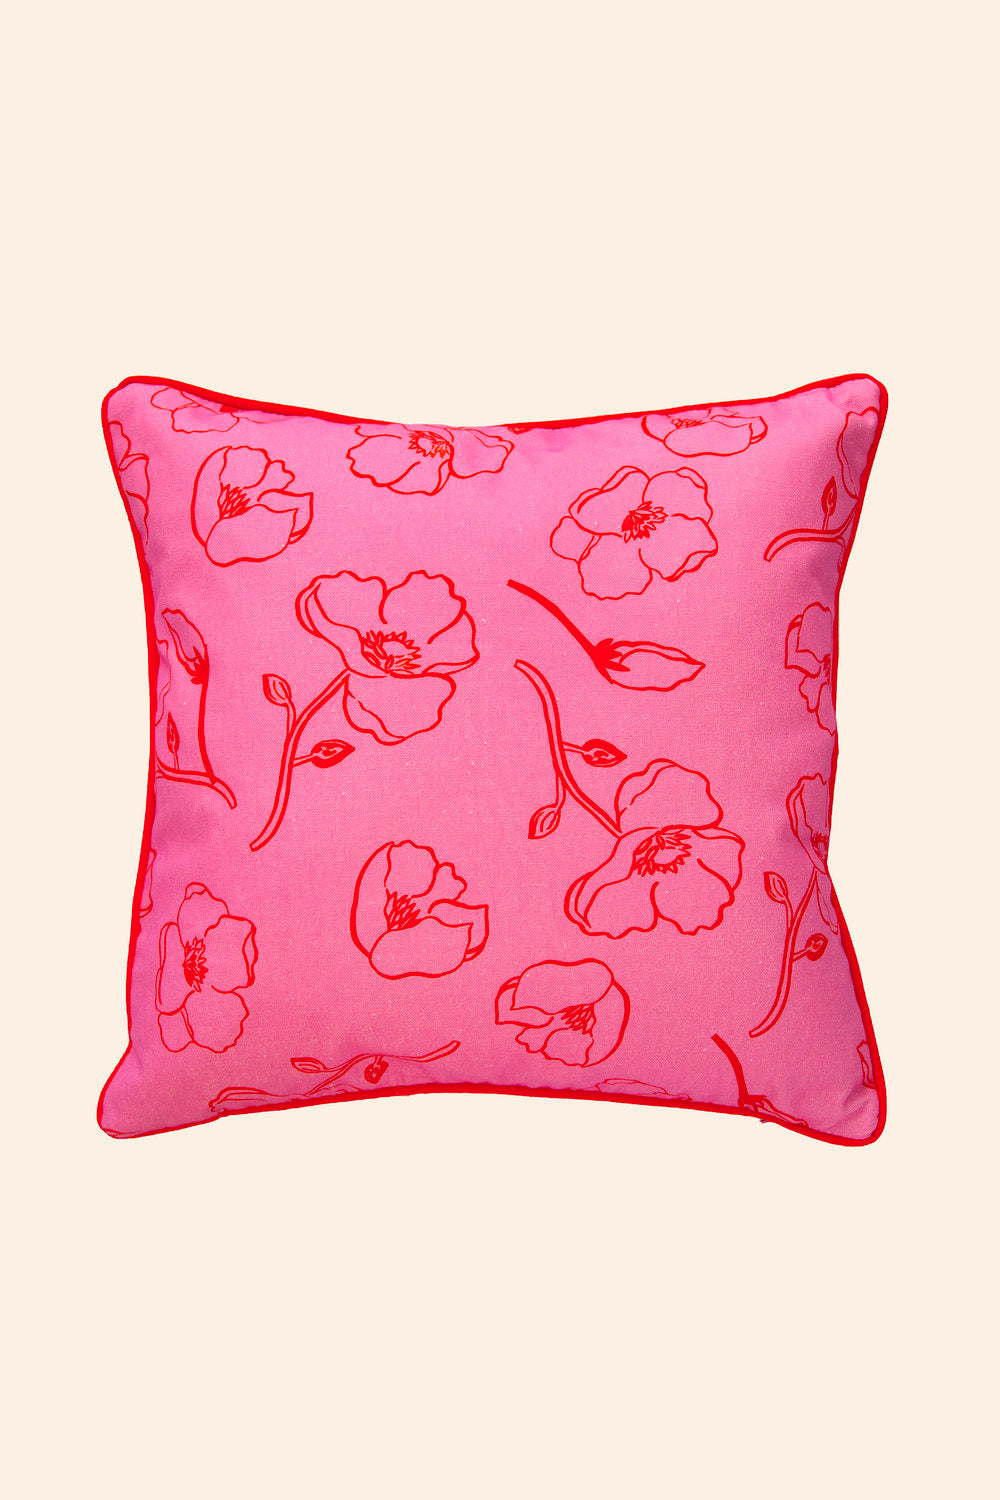 Orange Blossom cushion - AEIBE